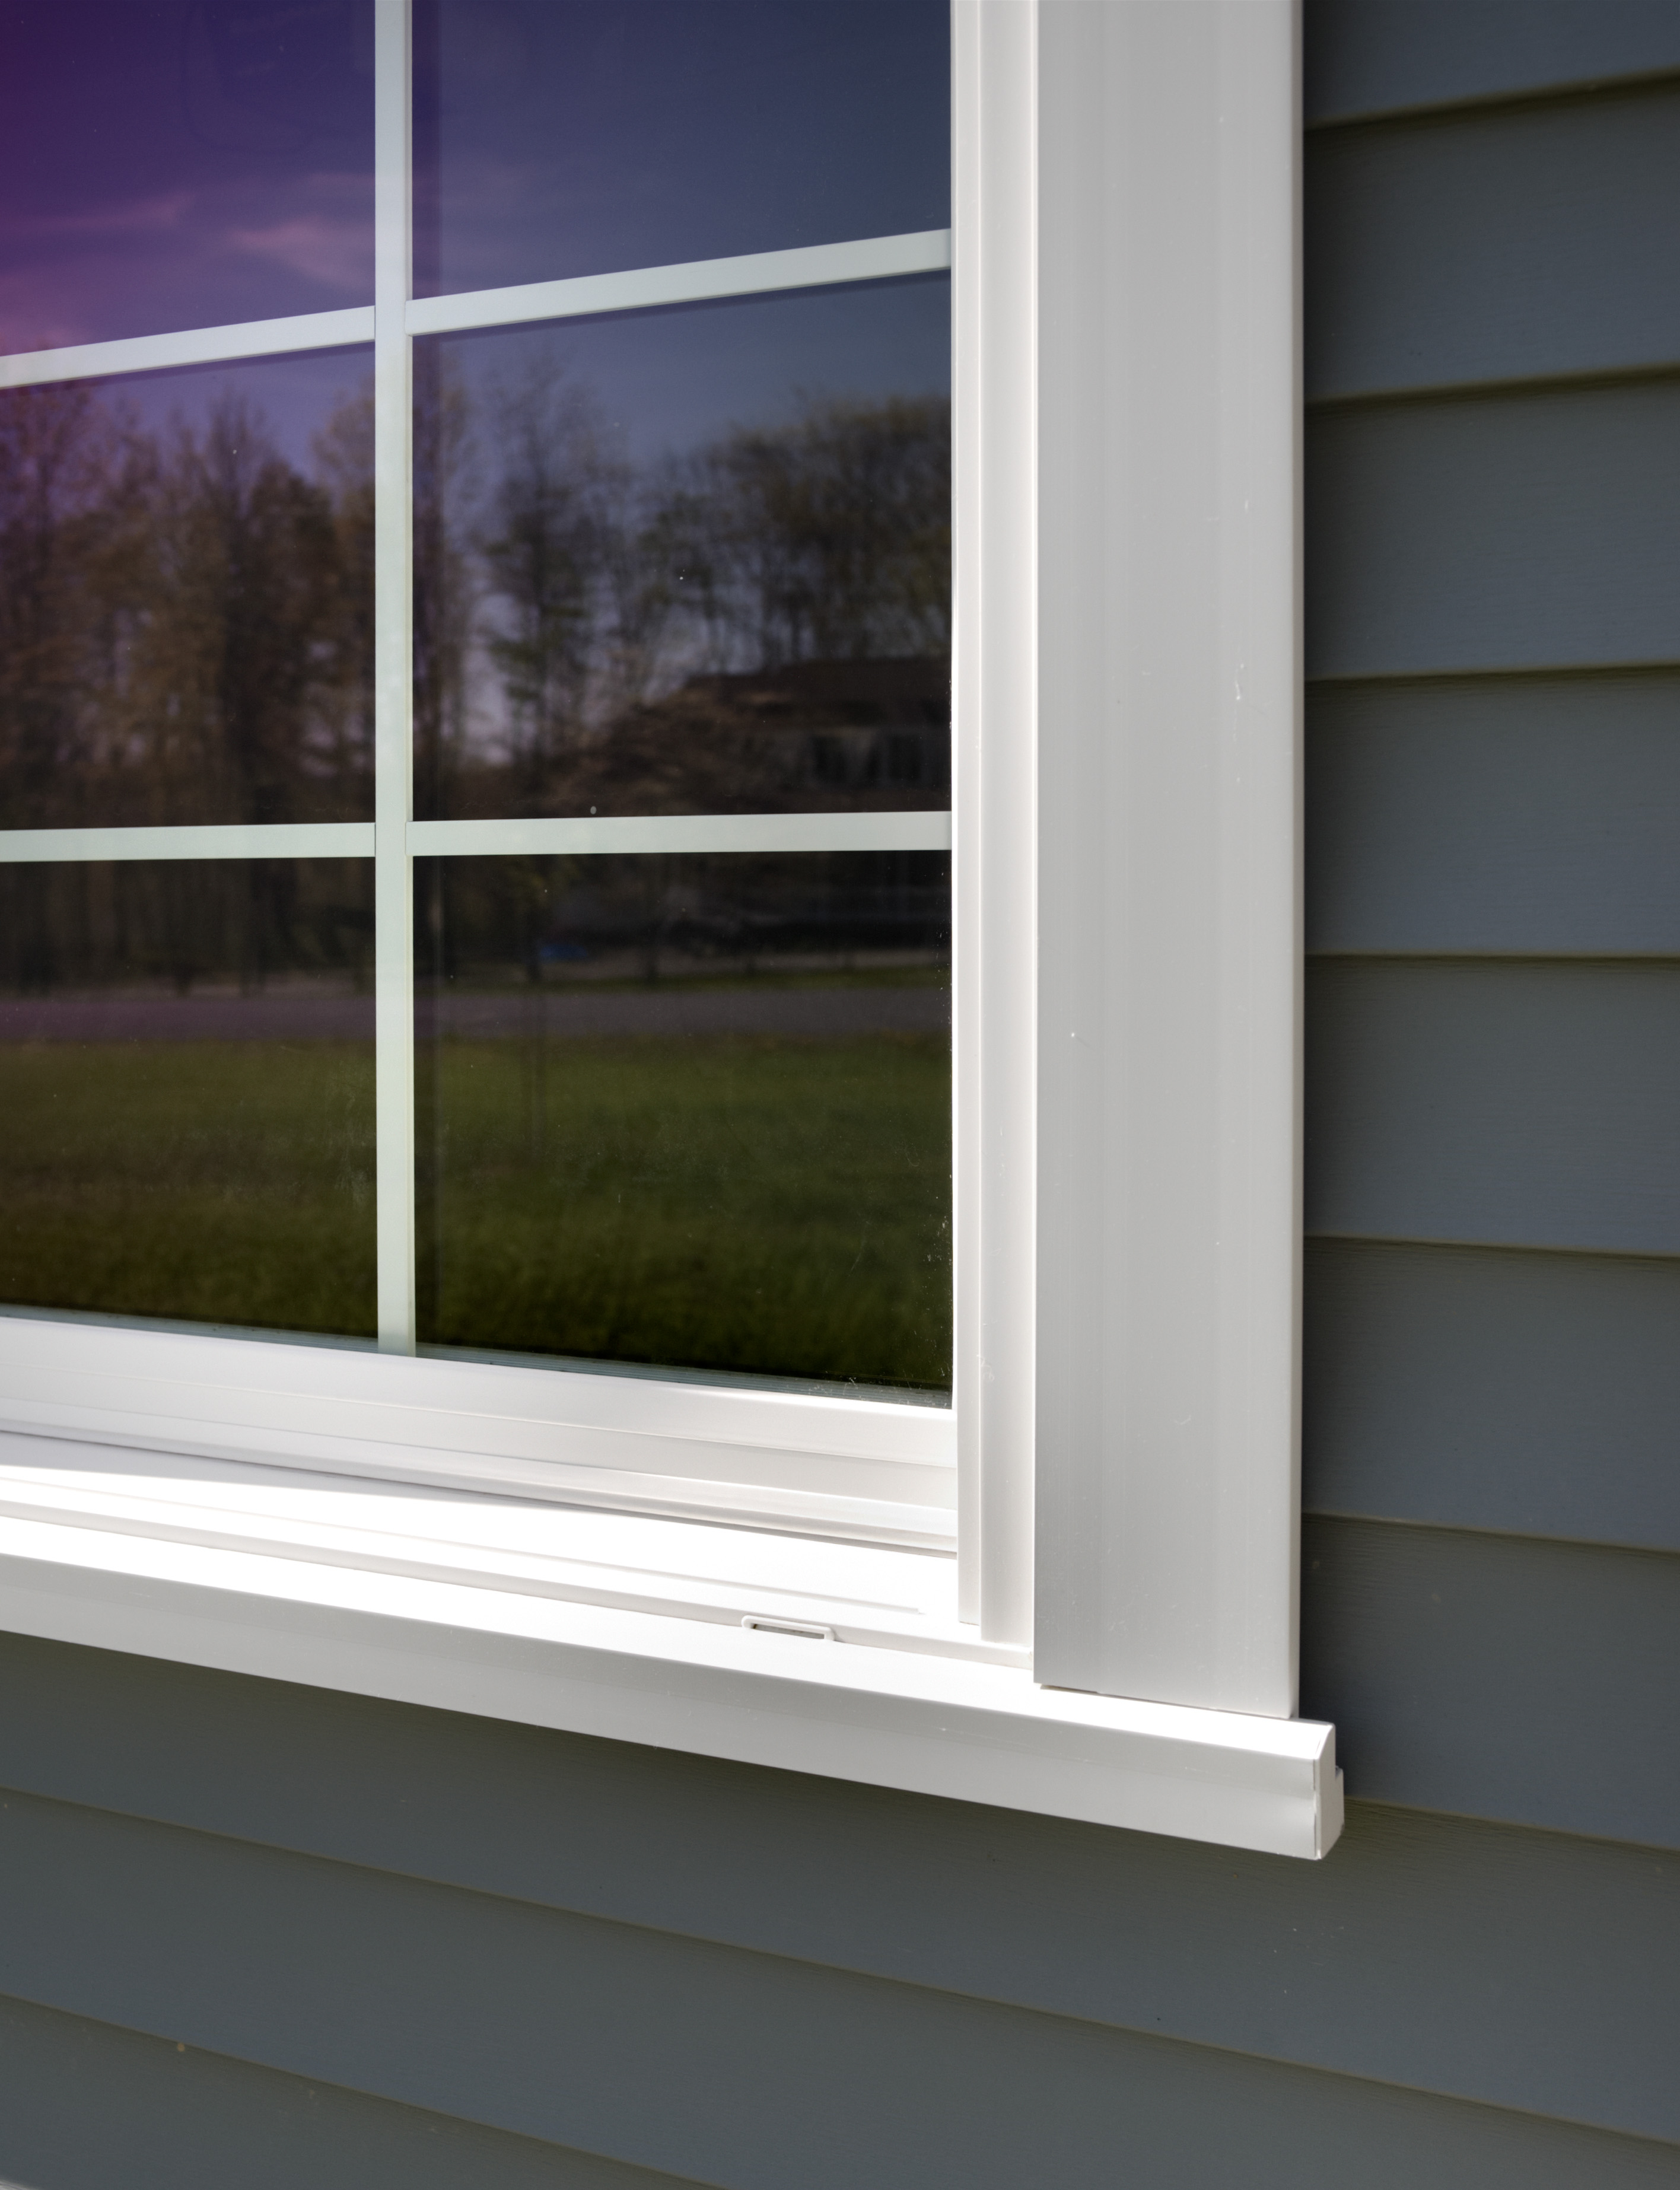 Simonton Profinish Brickmould 600 Window And Door Frames With New Color Options Add Style To